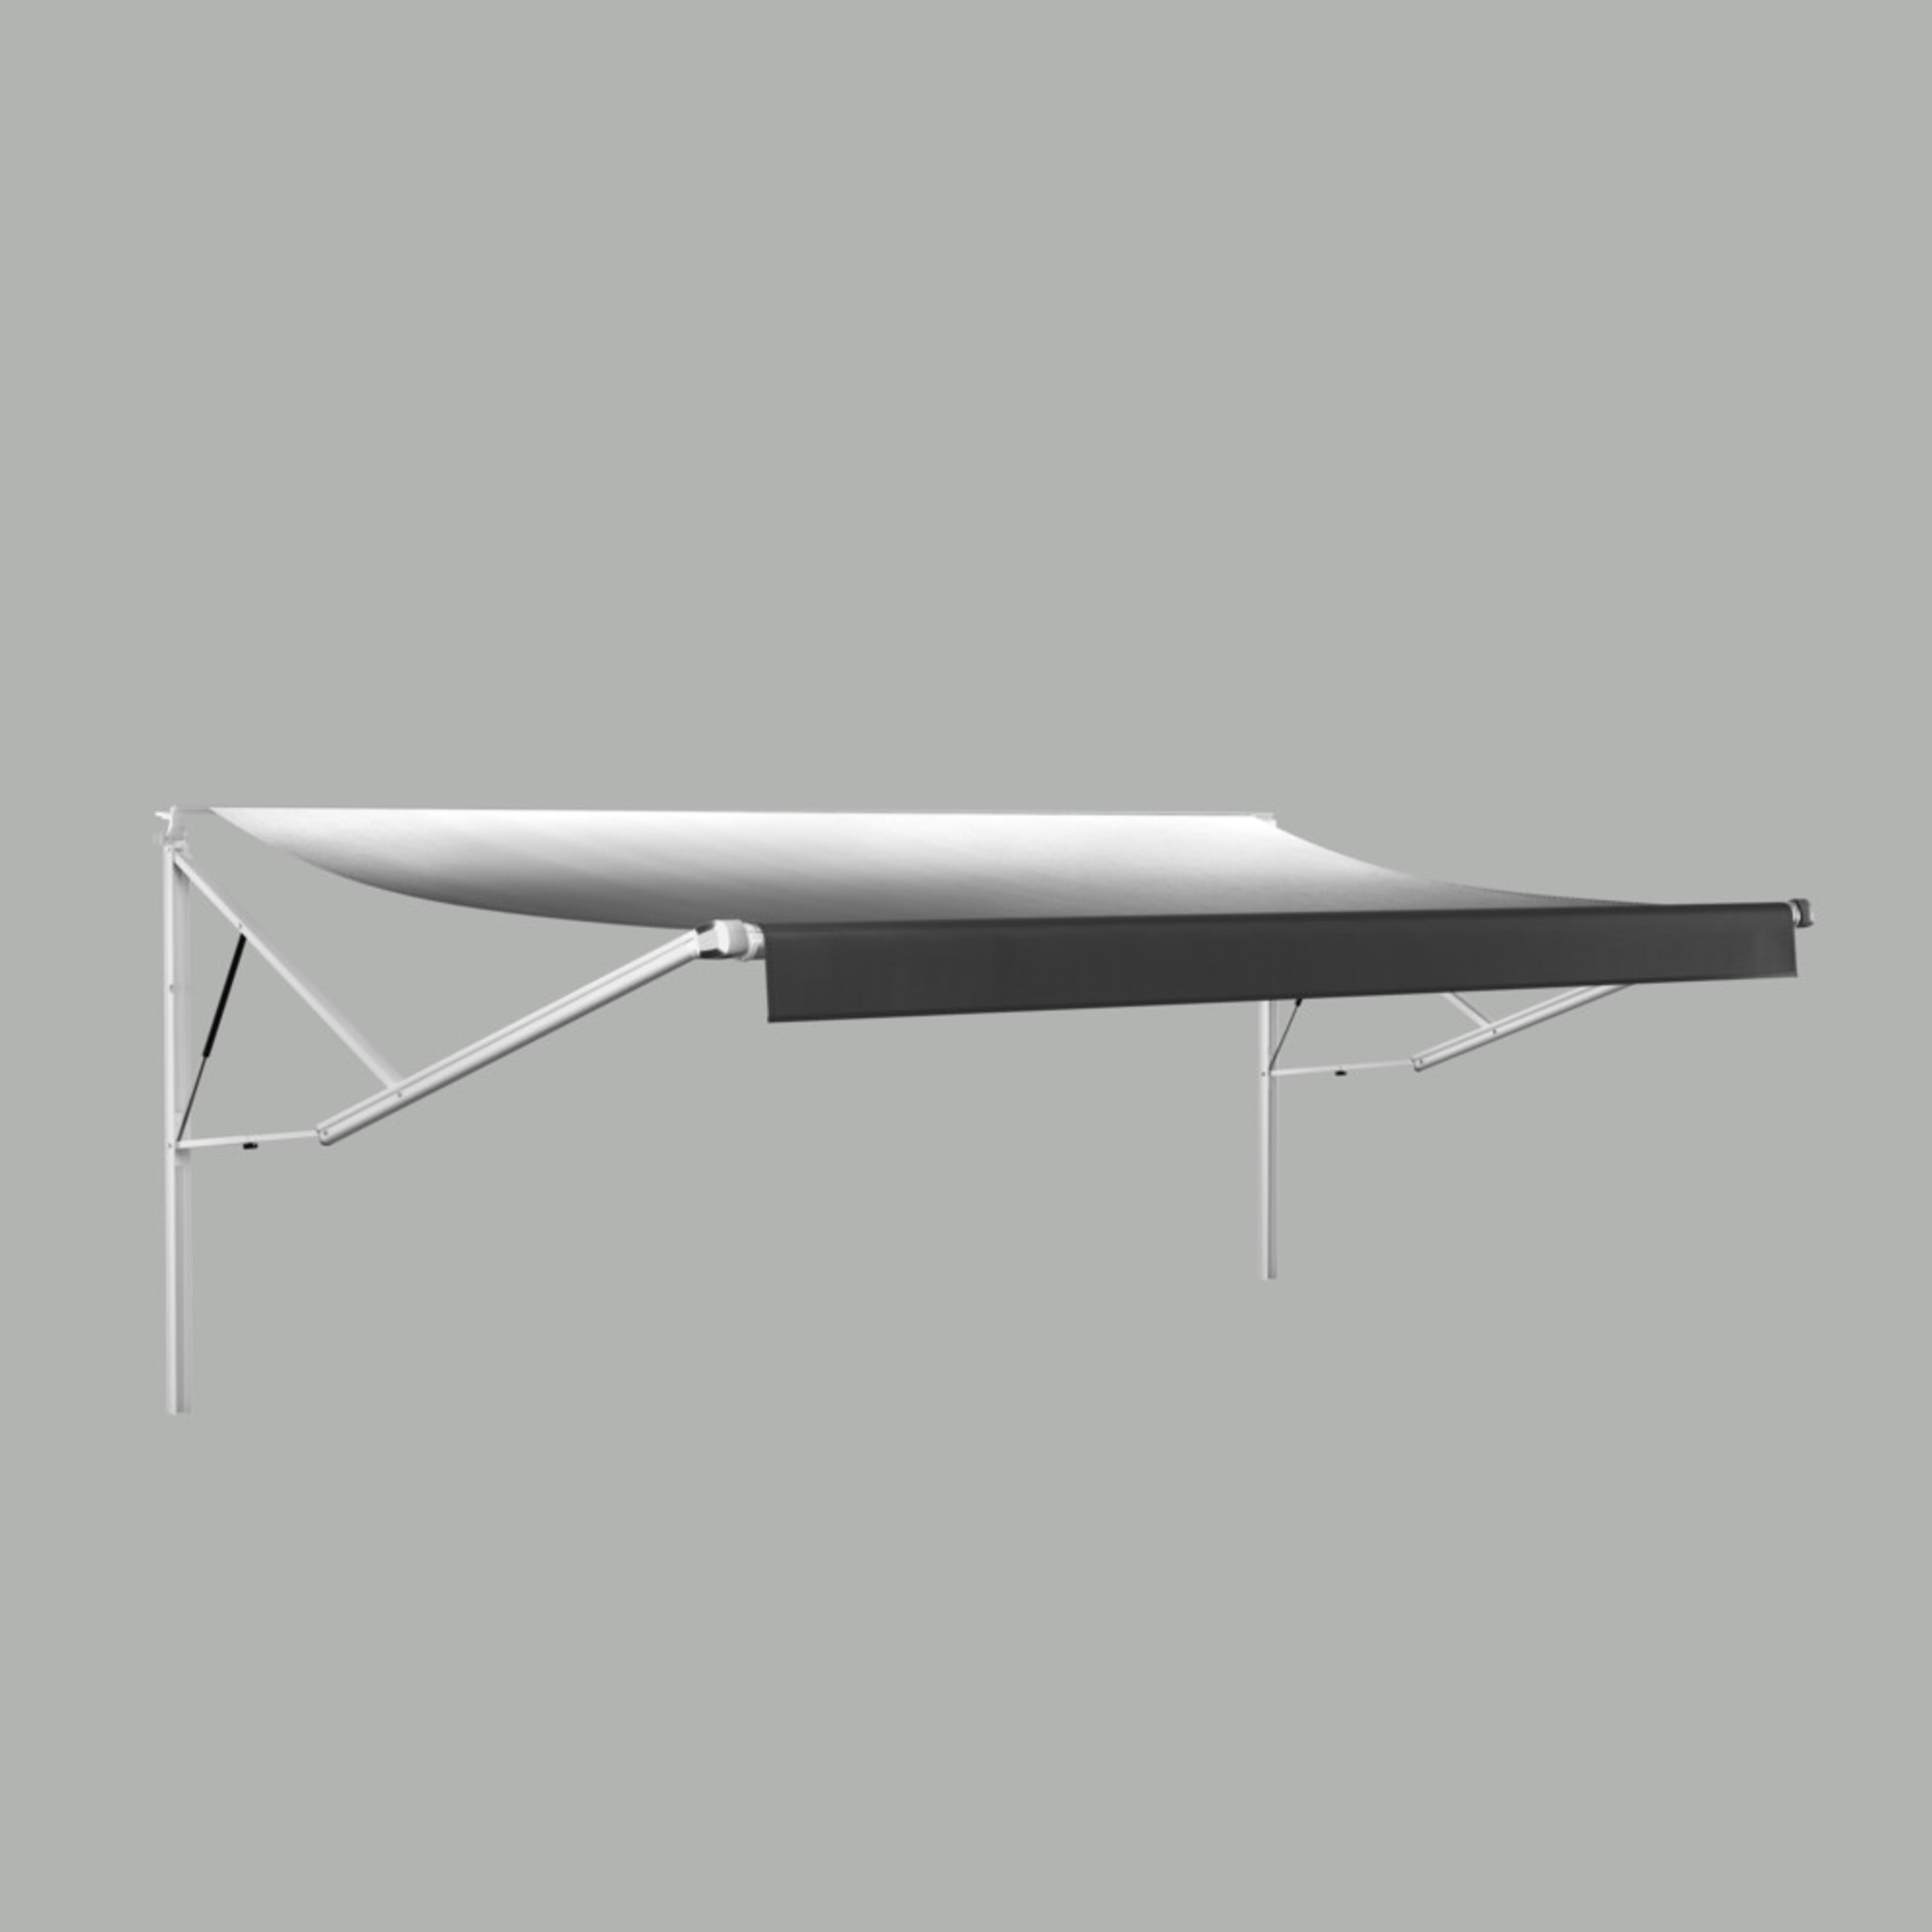 Dometic 9200 Power Awning